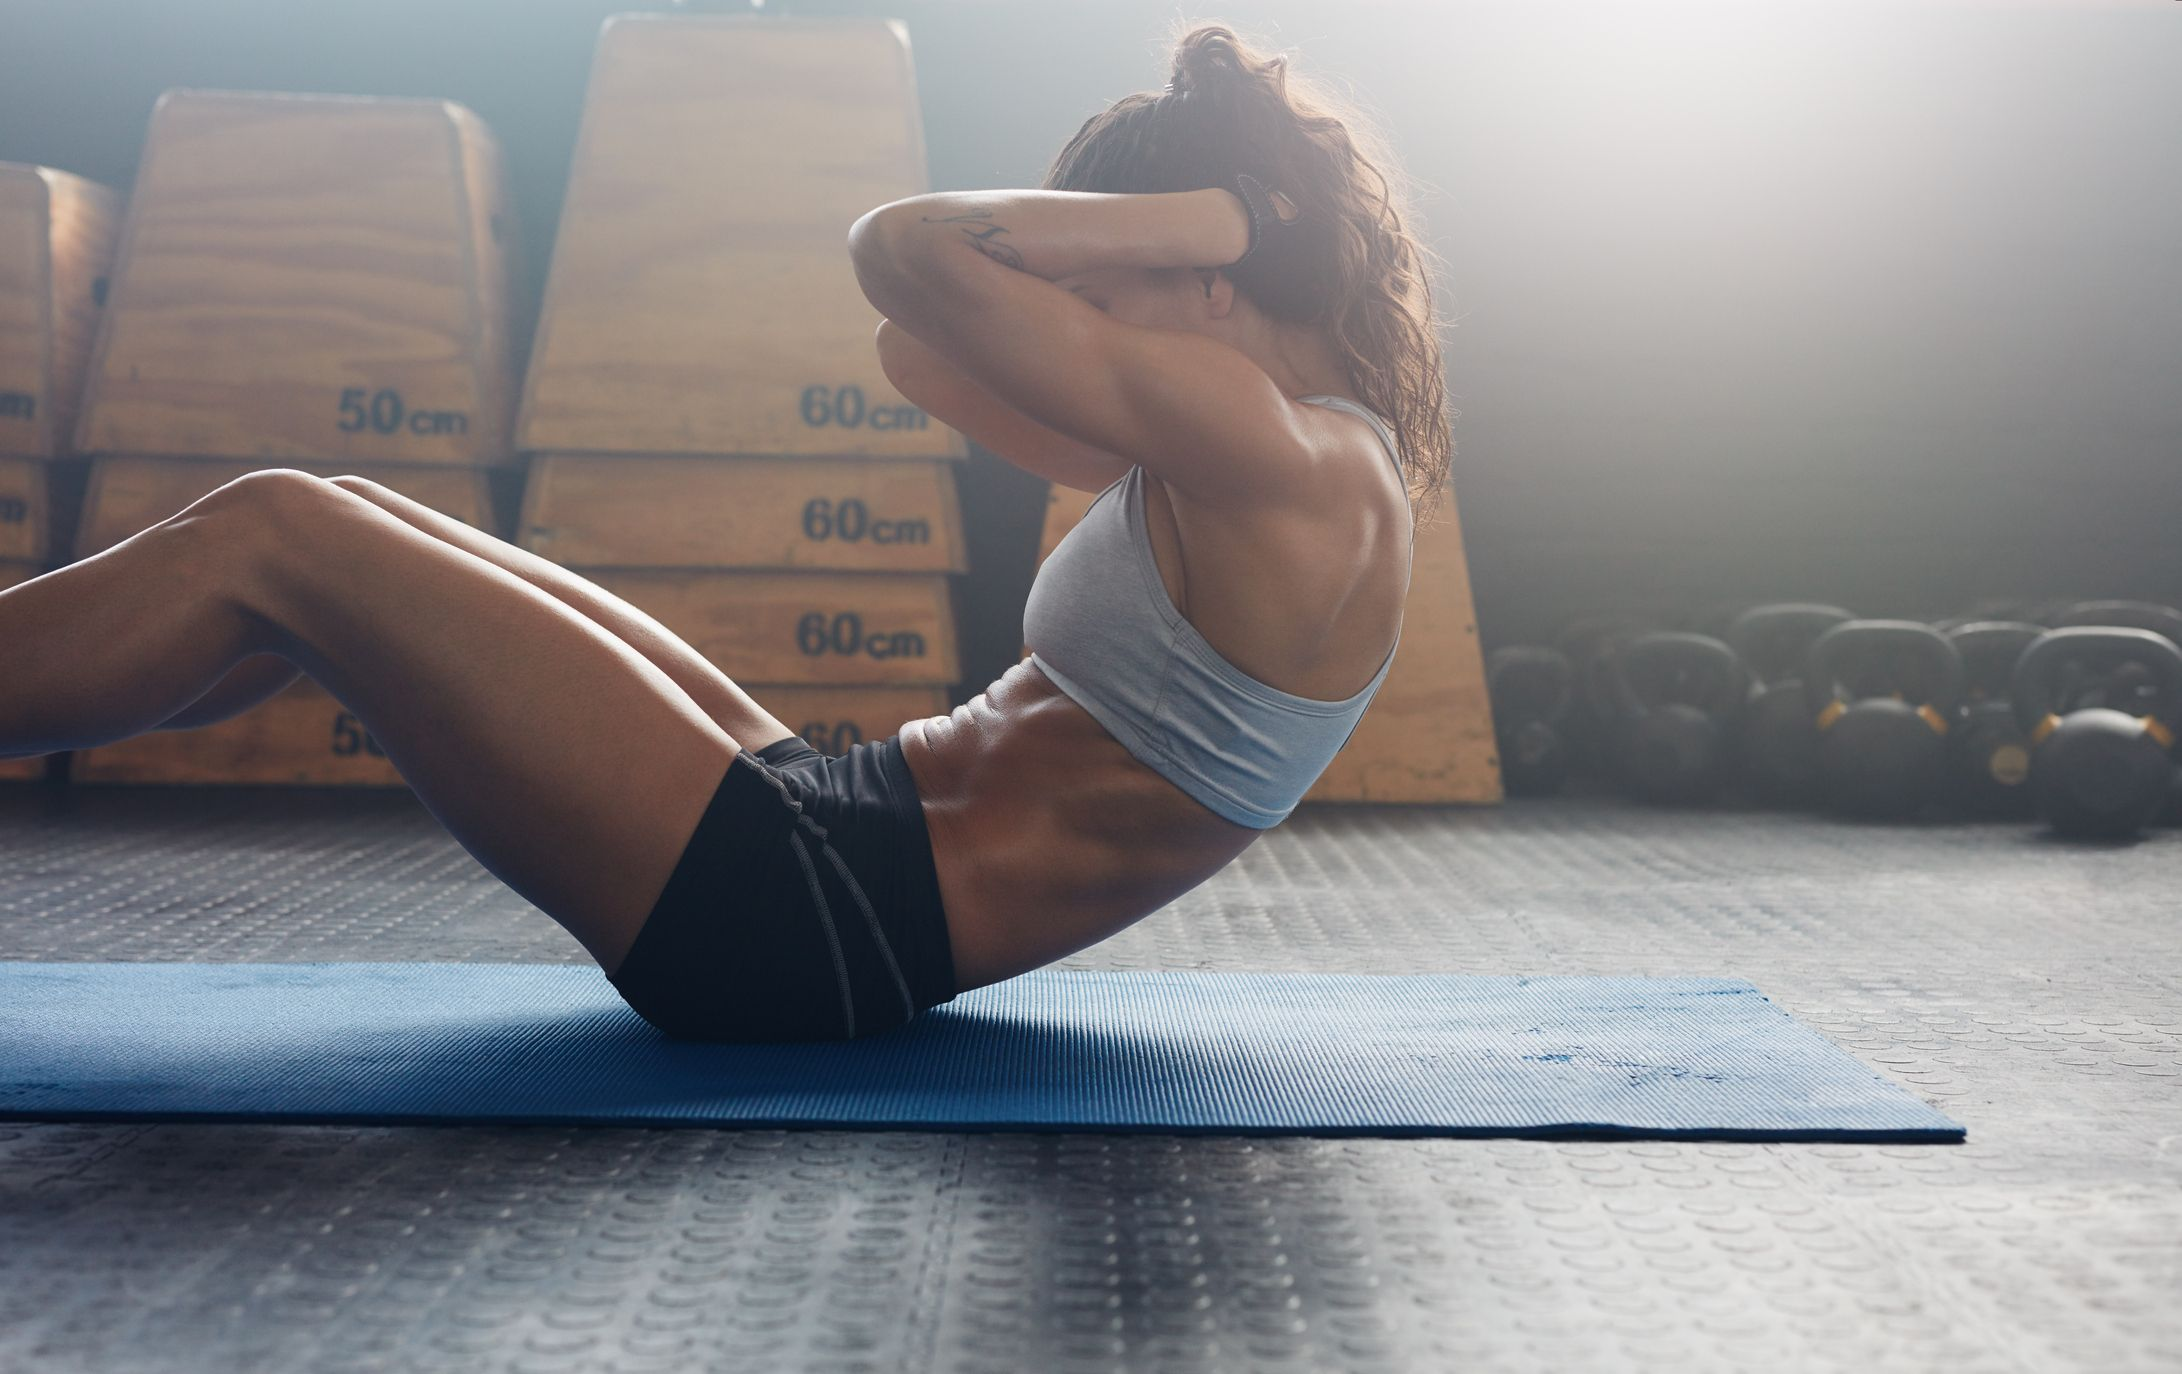 3 Simple Moves That Will Seriously Light Up Your Abs